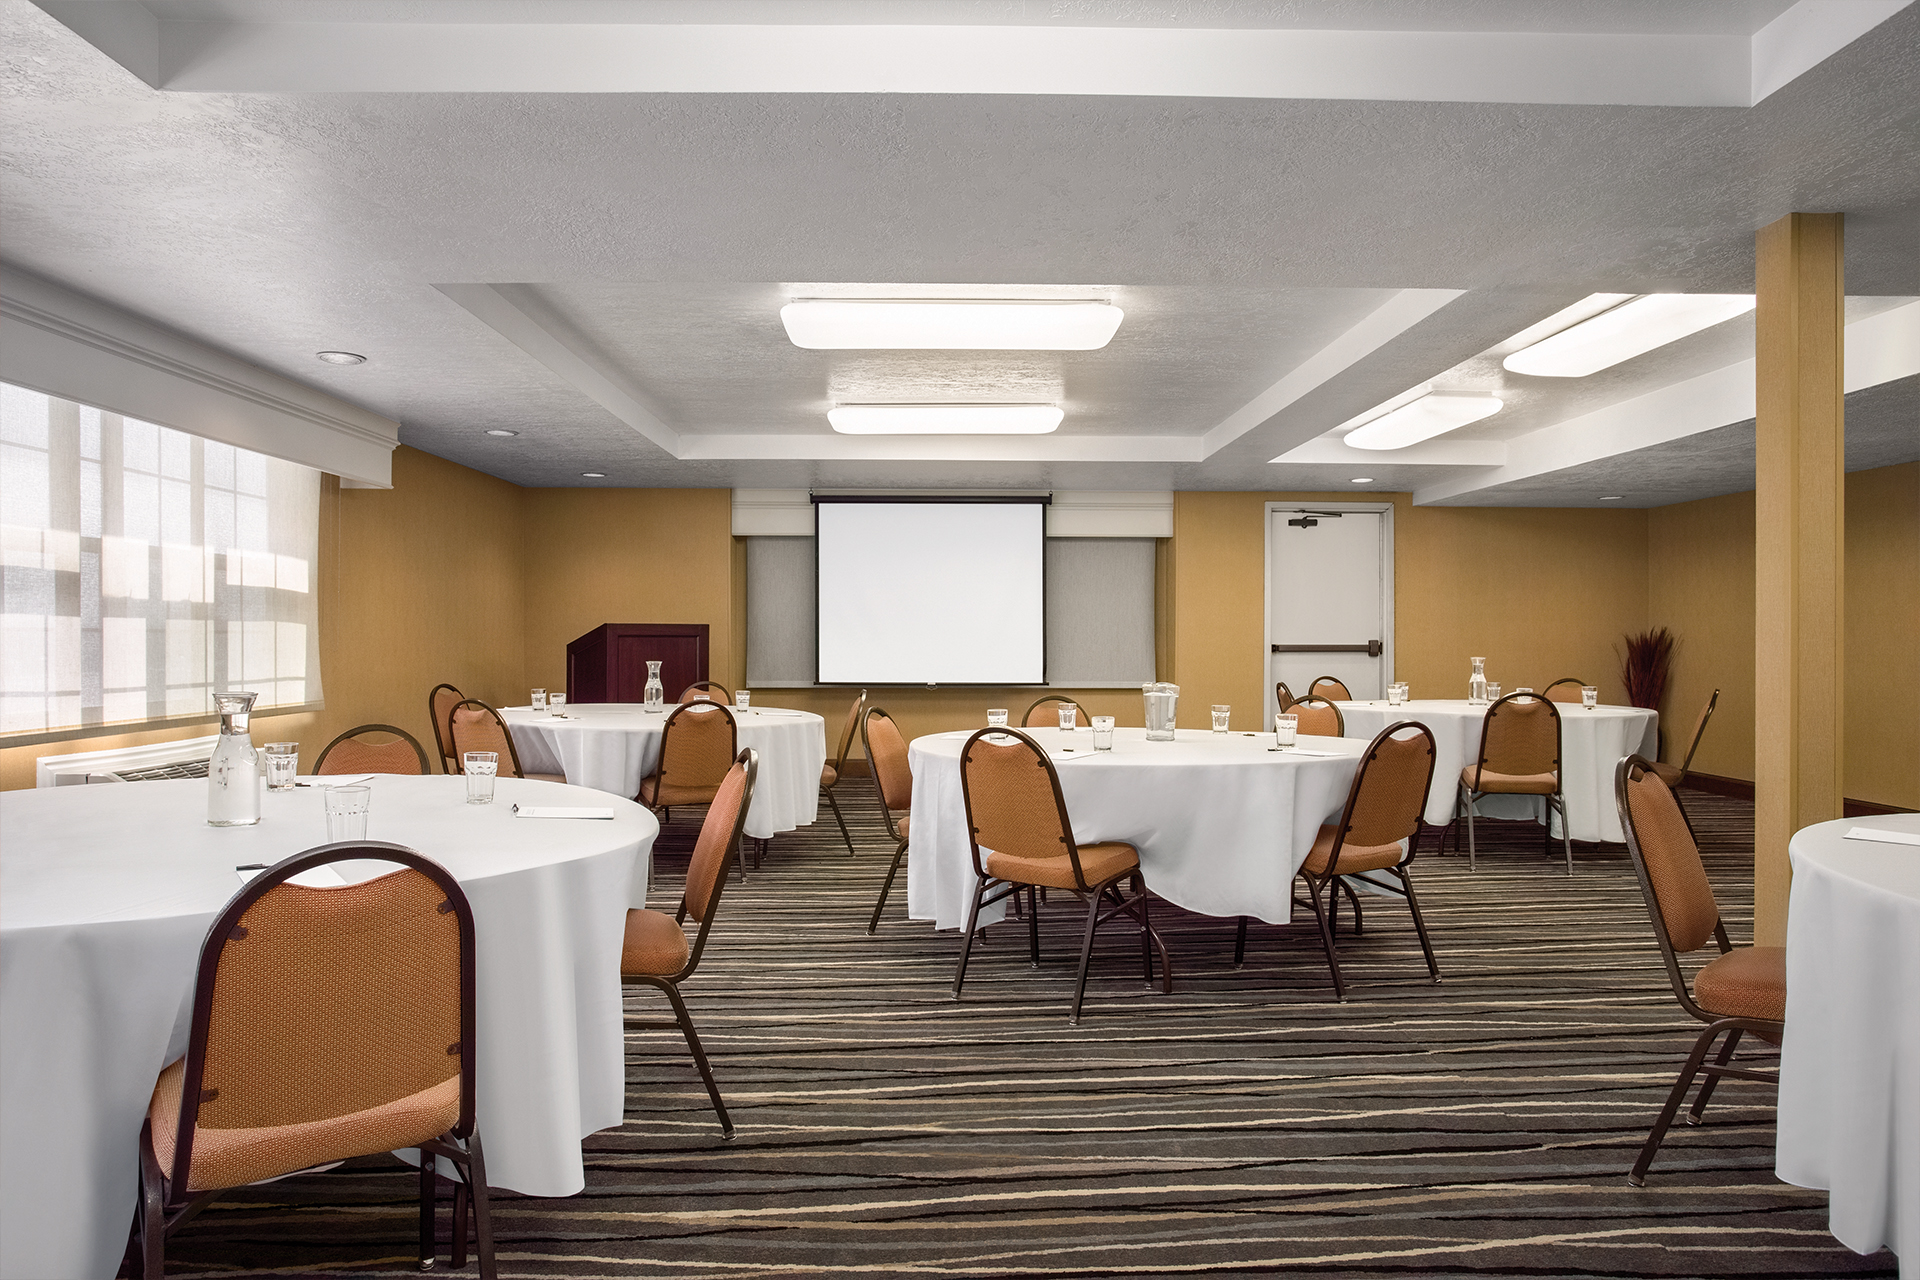 https://www.hotelsbyday.com/_data/default-hotel_image/2/10020/conference-room.jpg